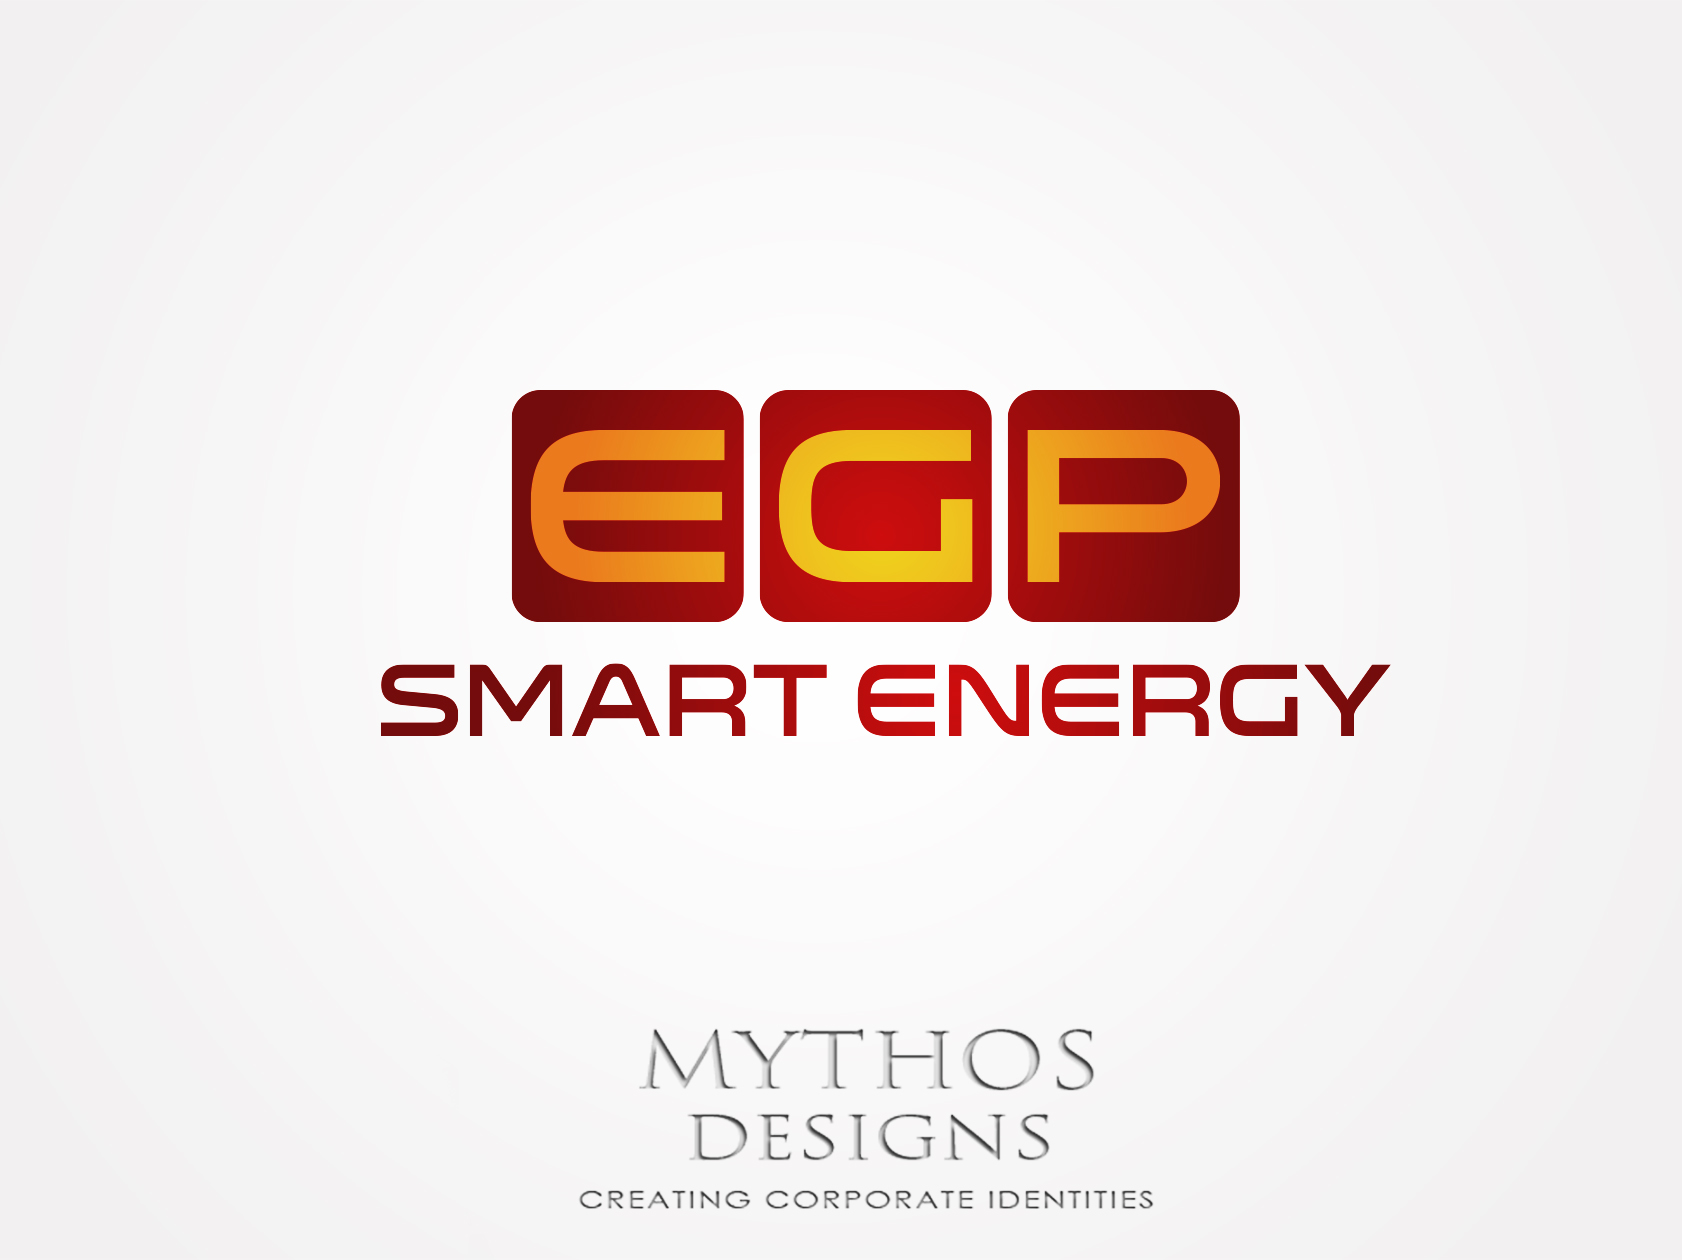 Logo Design by Mythos Designs - Entry No. 27 in the Logo Design Contest Captivating Logo Design for EGP Smart Energy.